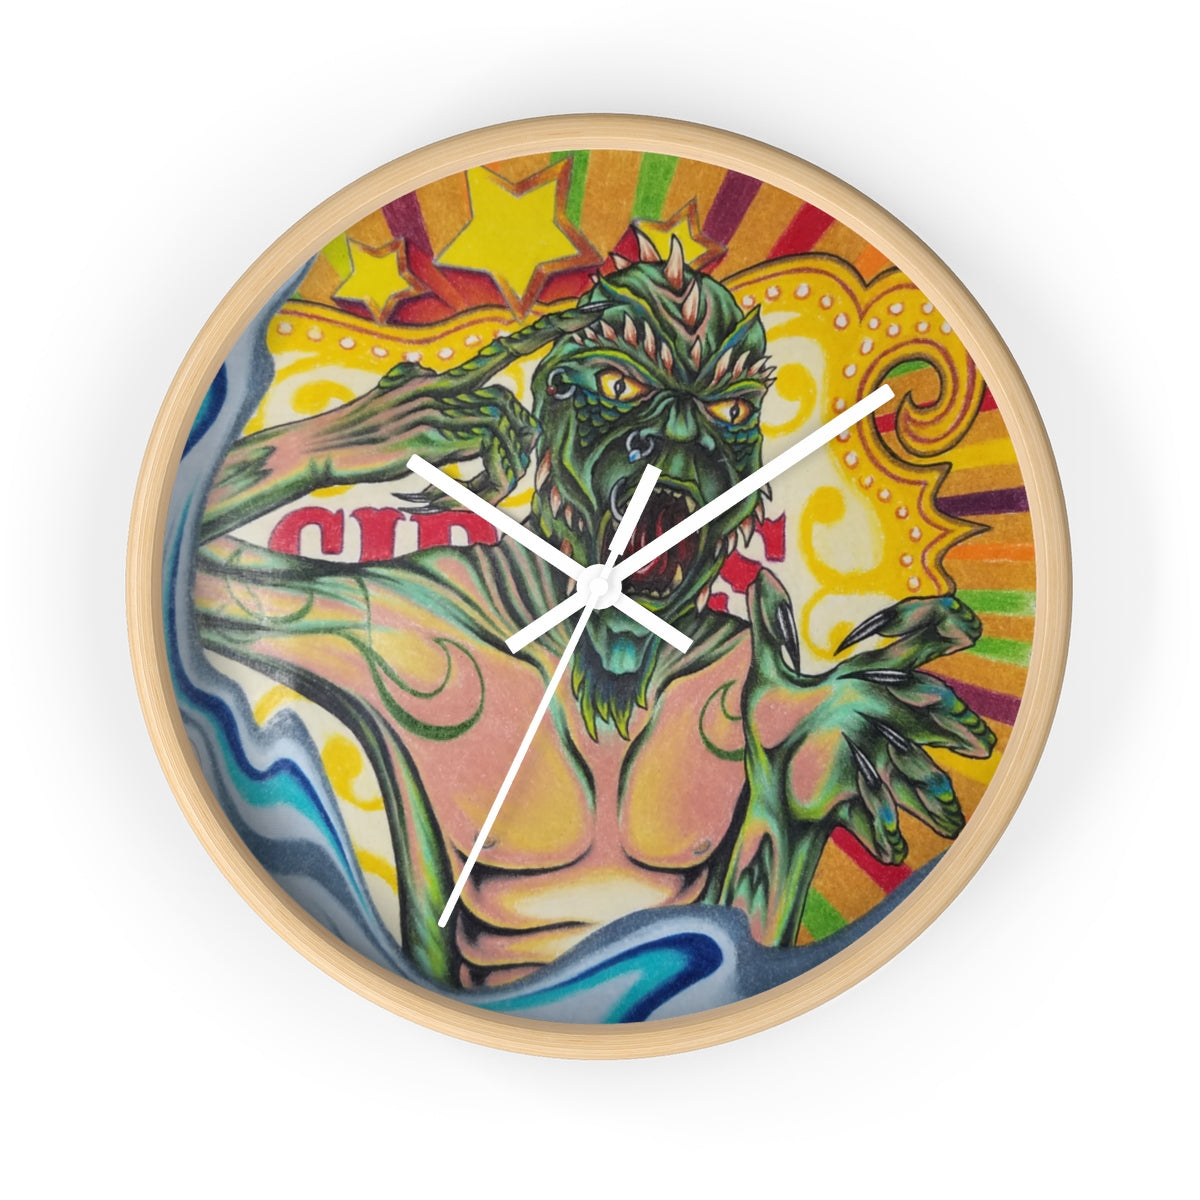 Carnie Time Wall clock